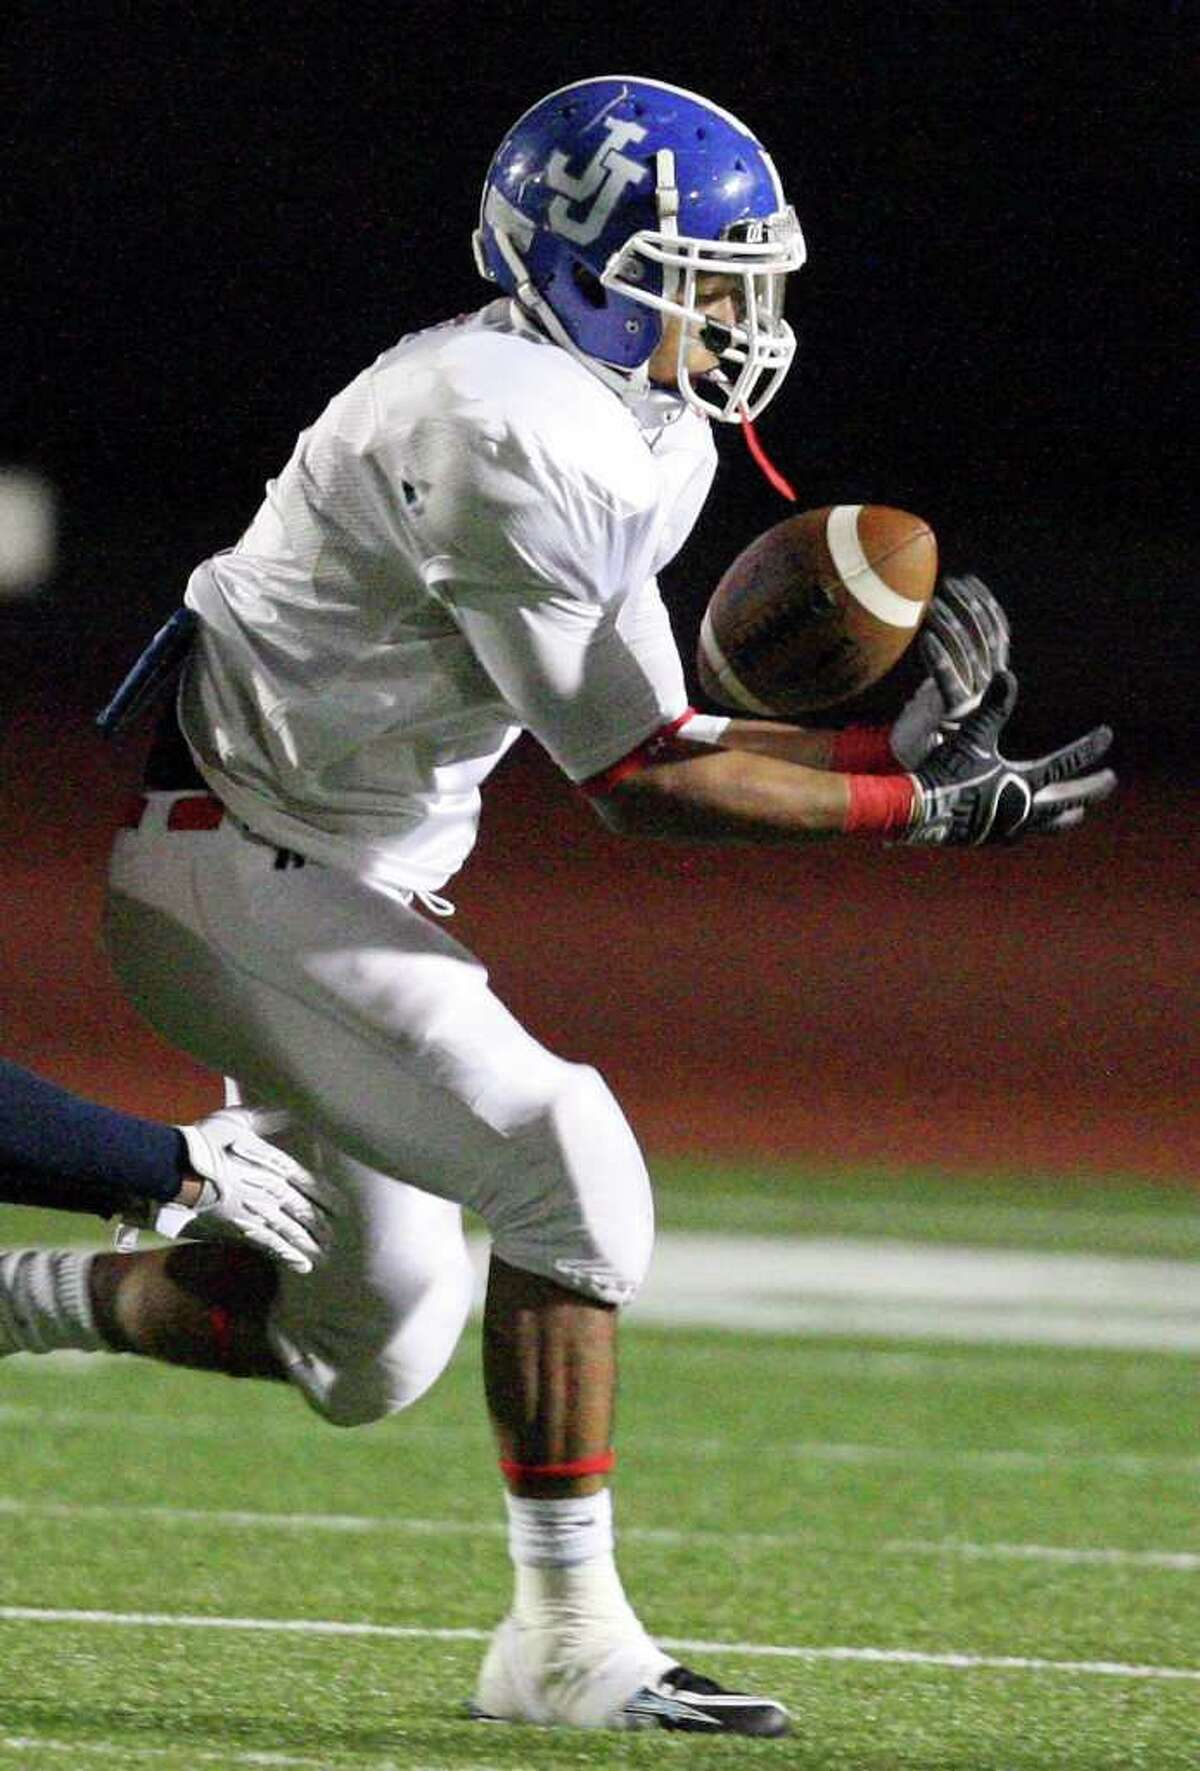 West team's Robert Cevallos drops a pass during second half action against the East team in the 33rd annual Pizza Hut High School All-Star Football Game held Saturday May 21, 2011 at Heroes Stadium. The East team won 15-7.